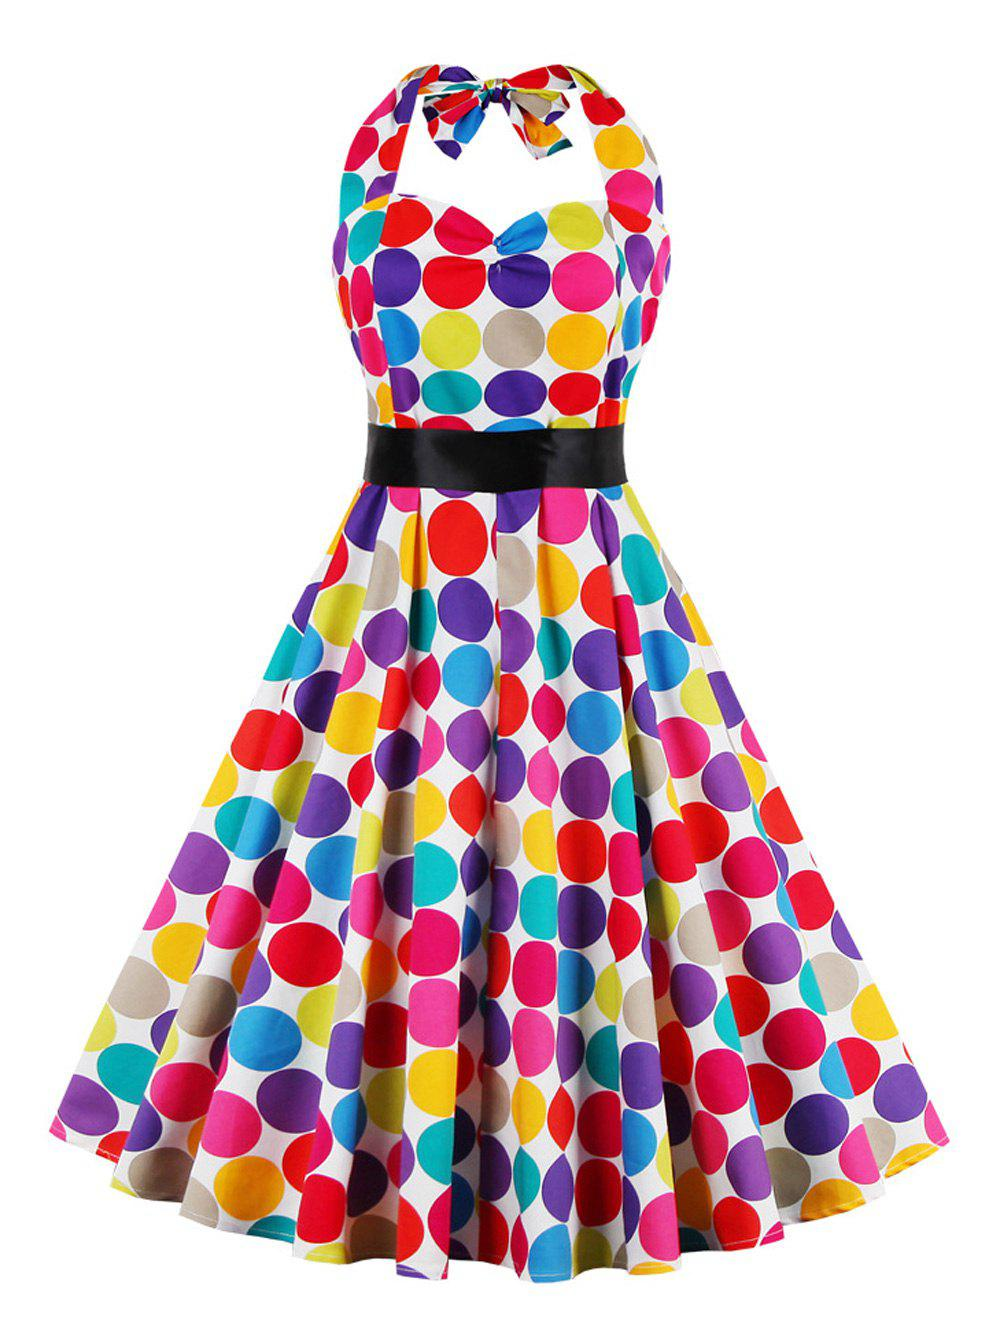 Retro Halter Sweetheart Neck Colorful Polk Dot Dress - COLORMIX 3XL